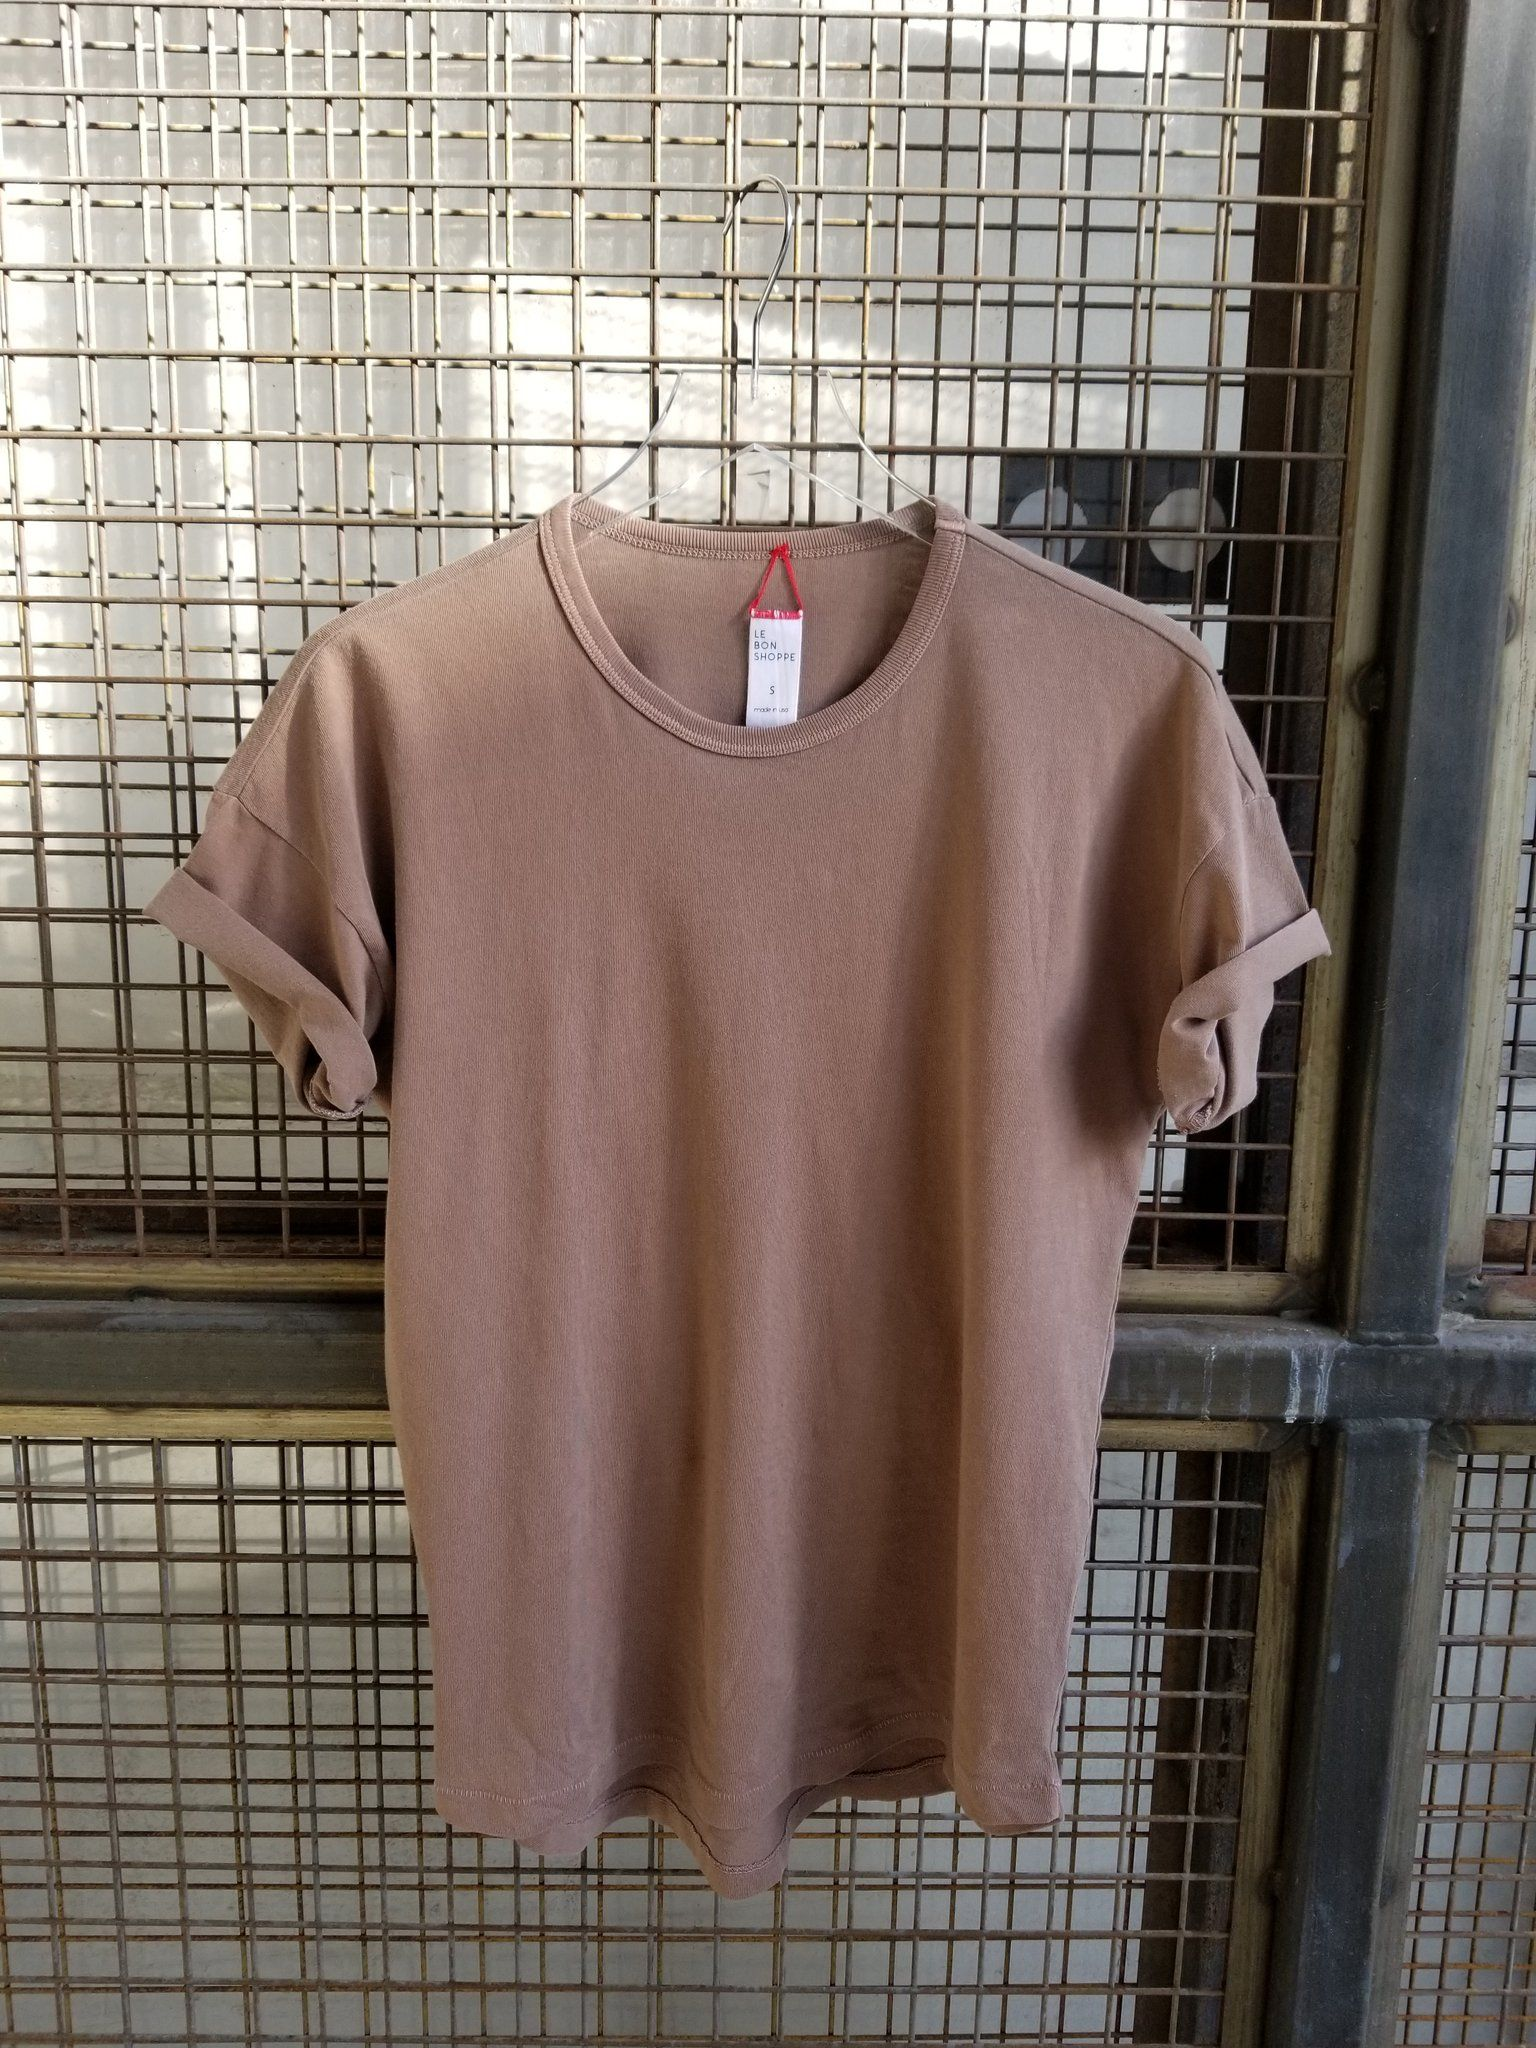 Product Image for Her Tee, Chocolat